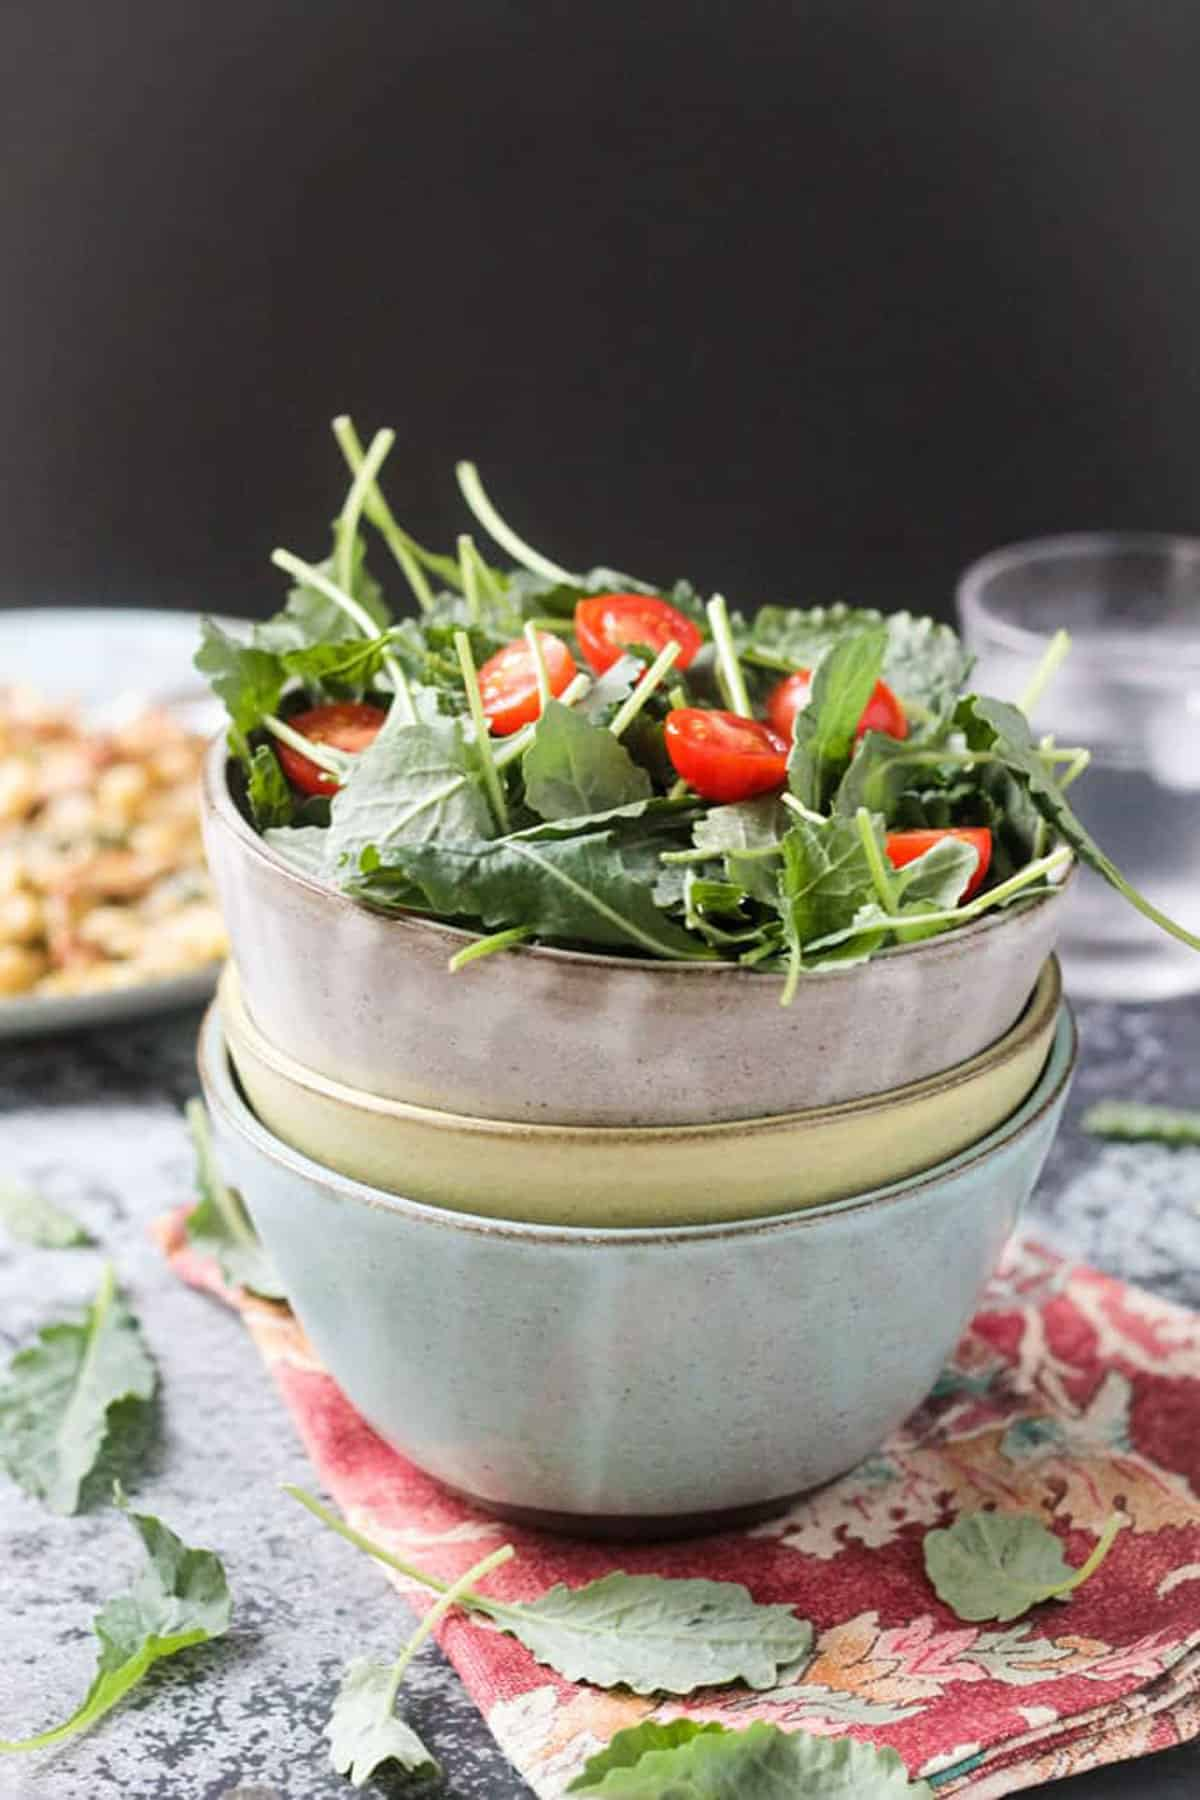 Stack of 3 bowls with baby kale and halved tomatoes in the top bowl